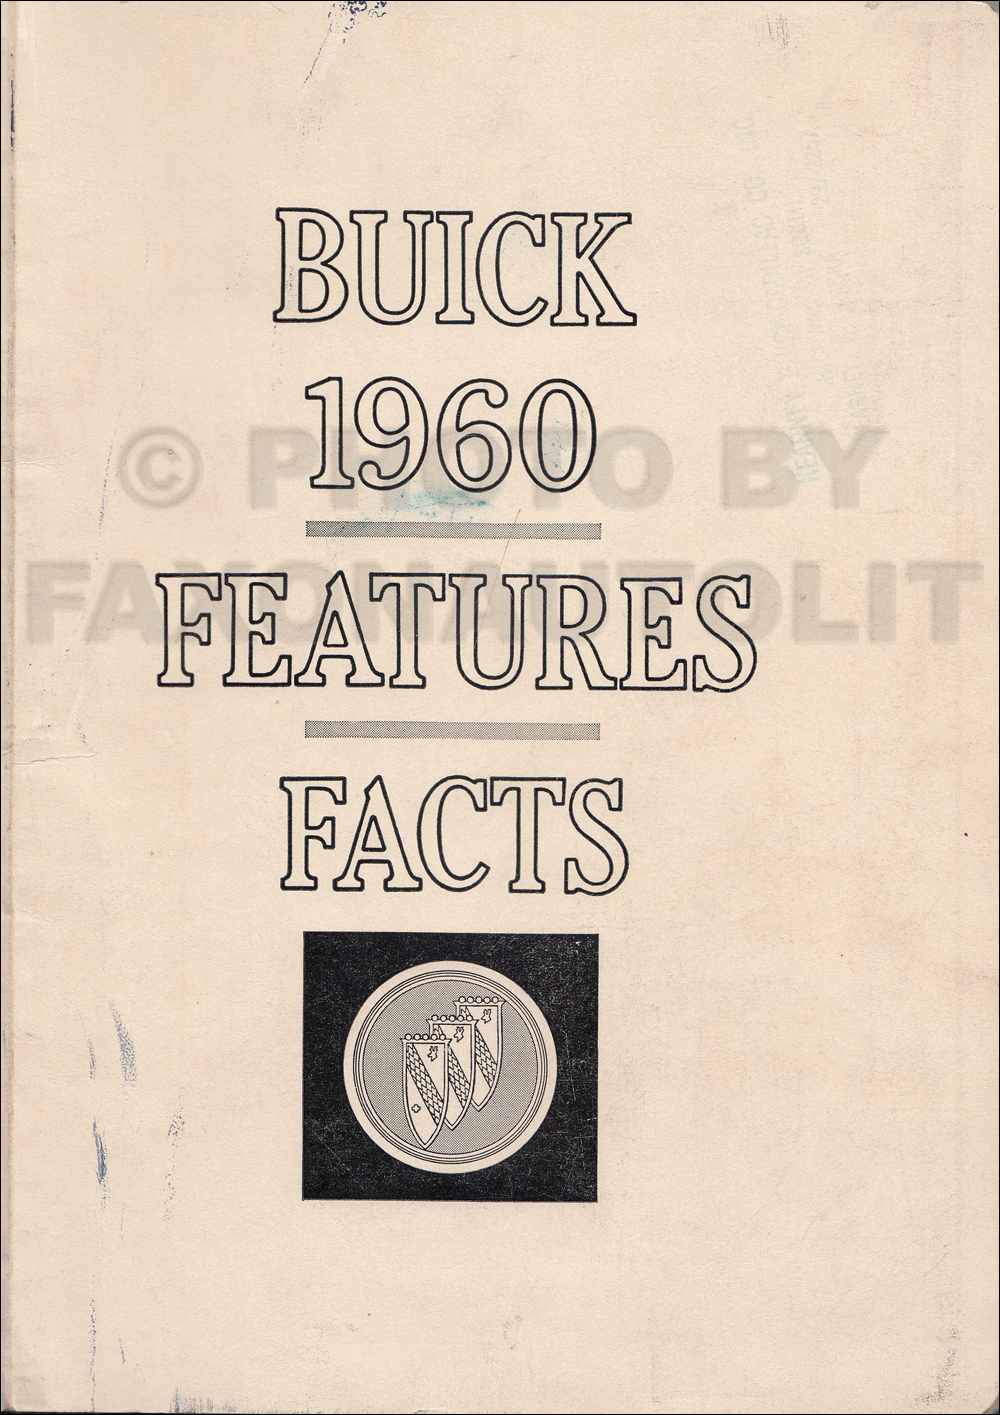 1960 Buick Features Facts Book Original